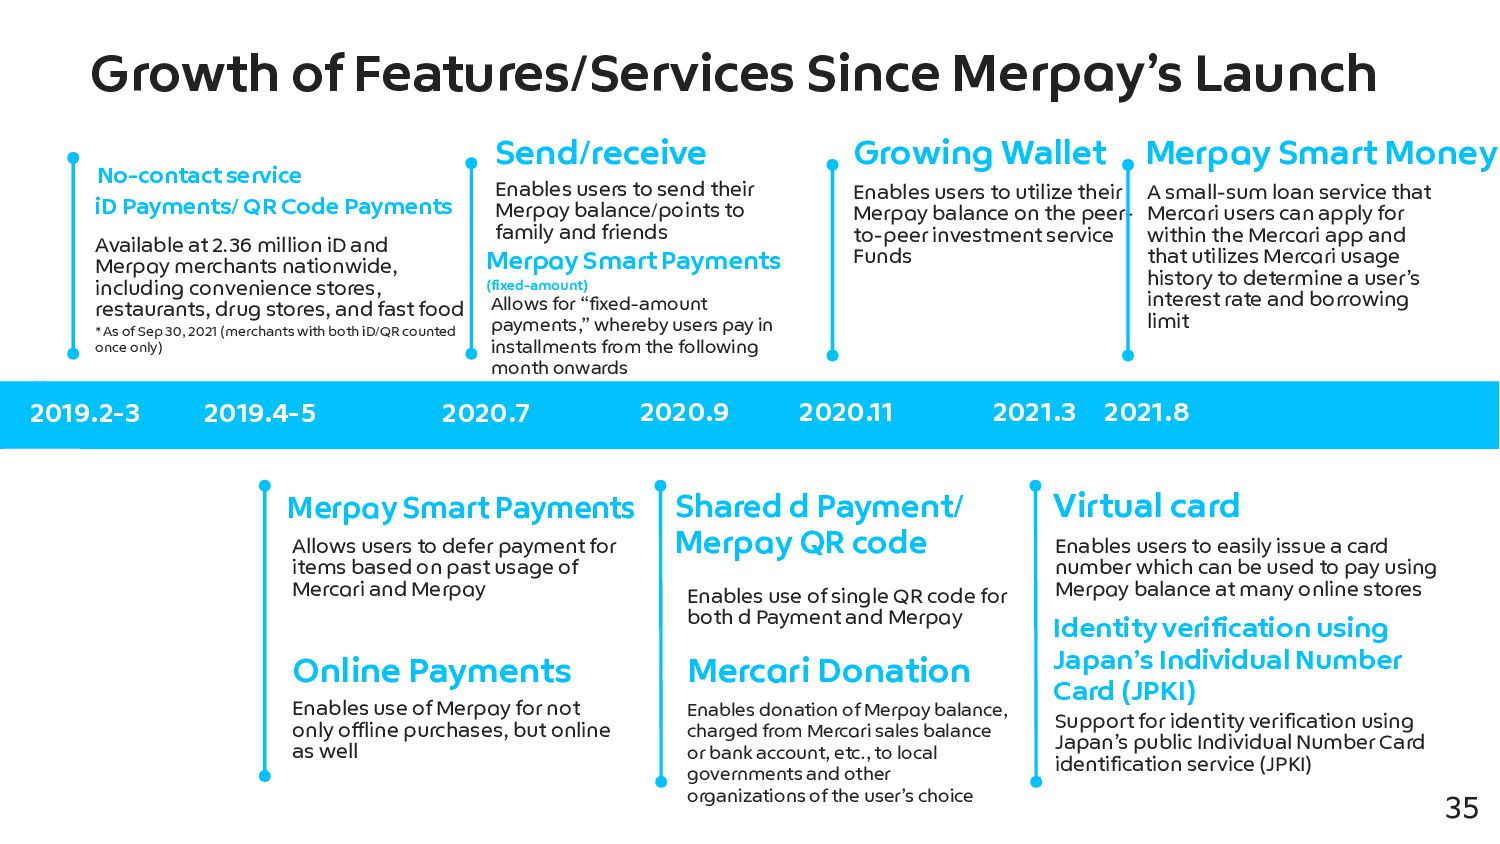 35 Mission Building trust for a seamless society